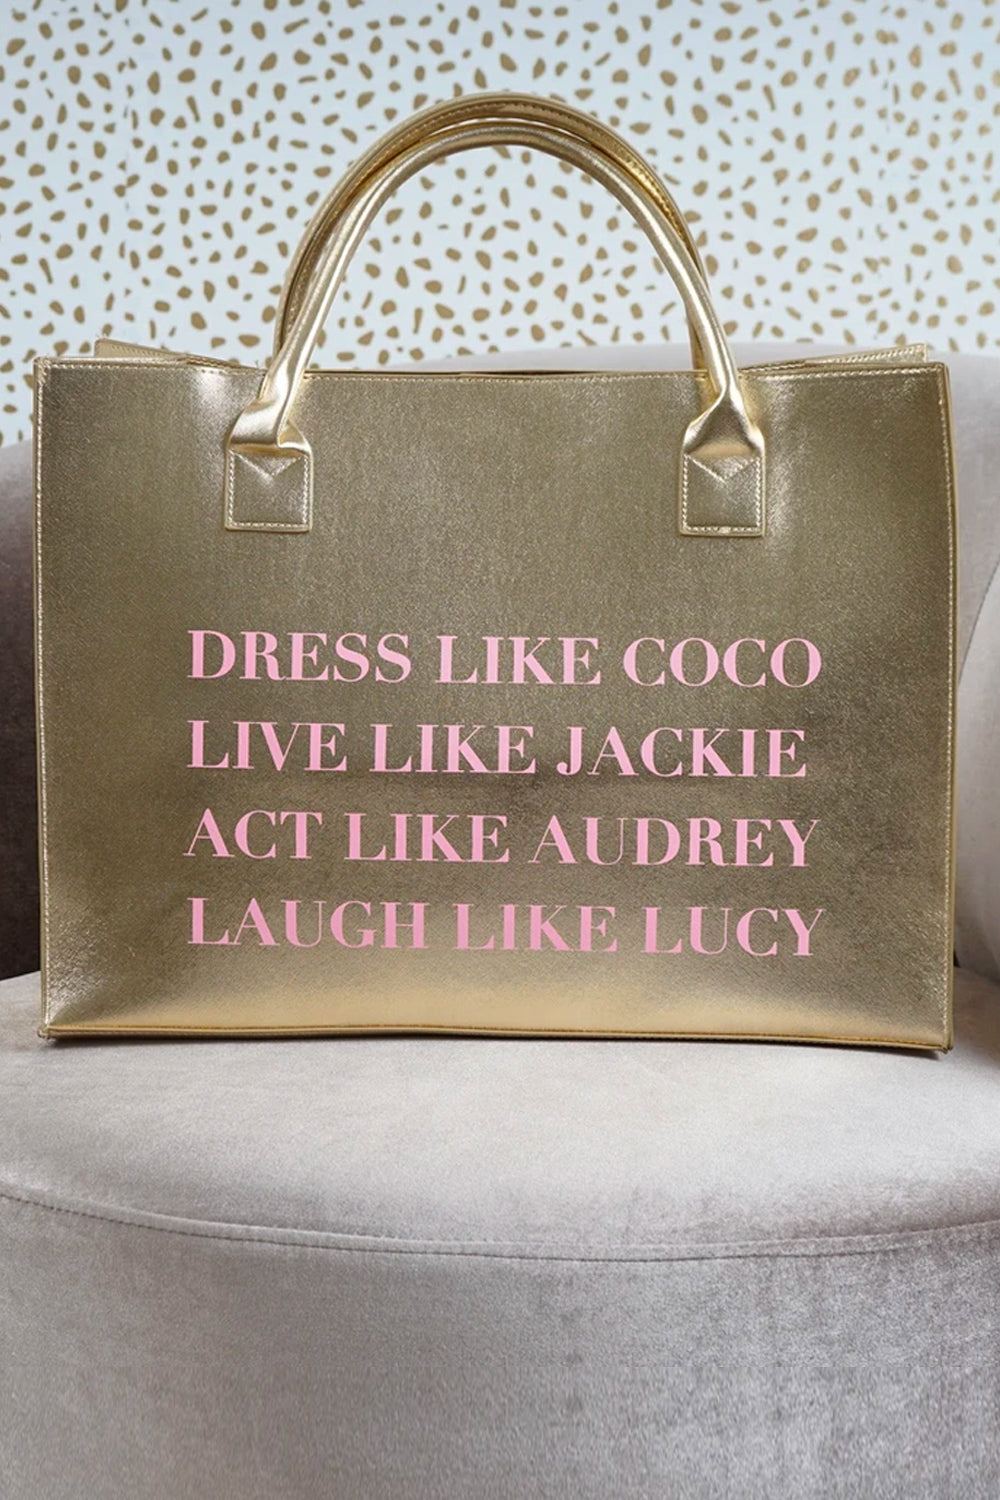 MODERN VEGAN TOTE - Dress Like Coco (Gold)